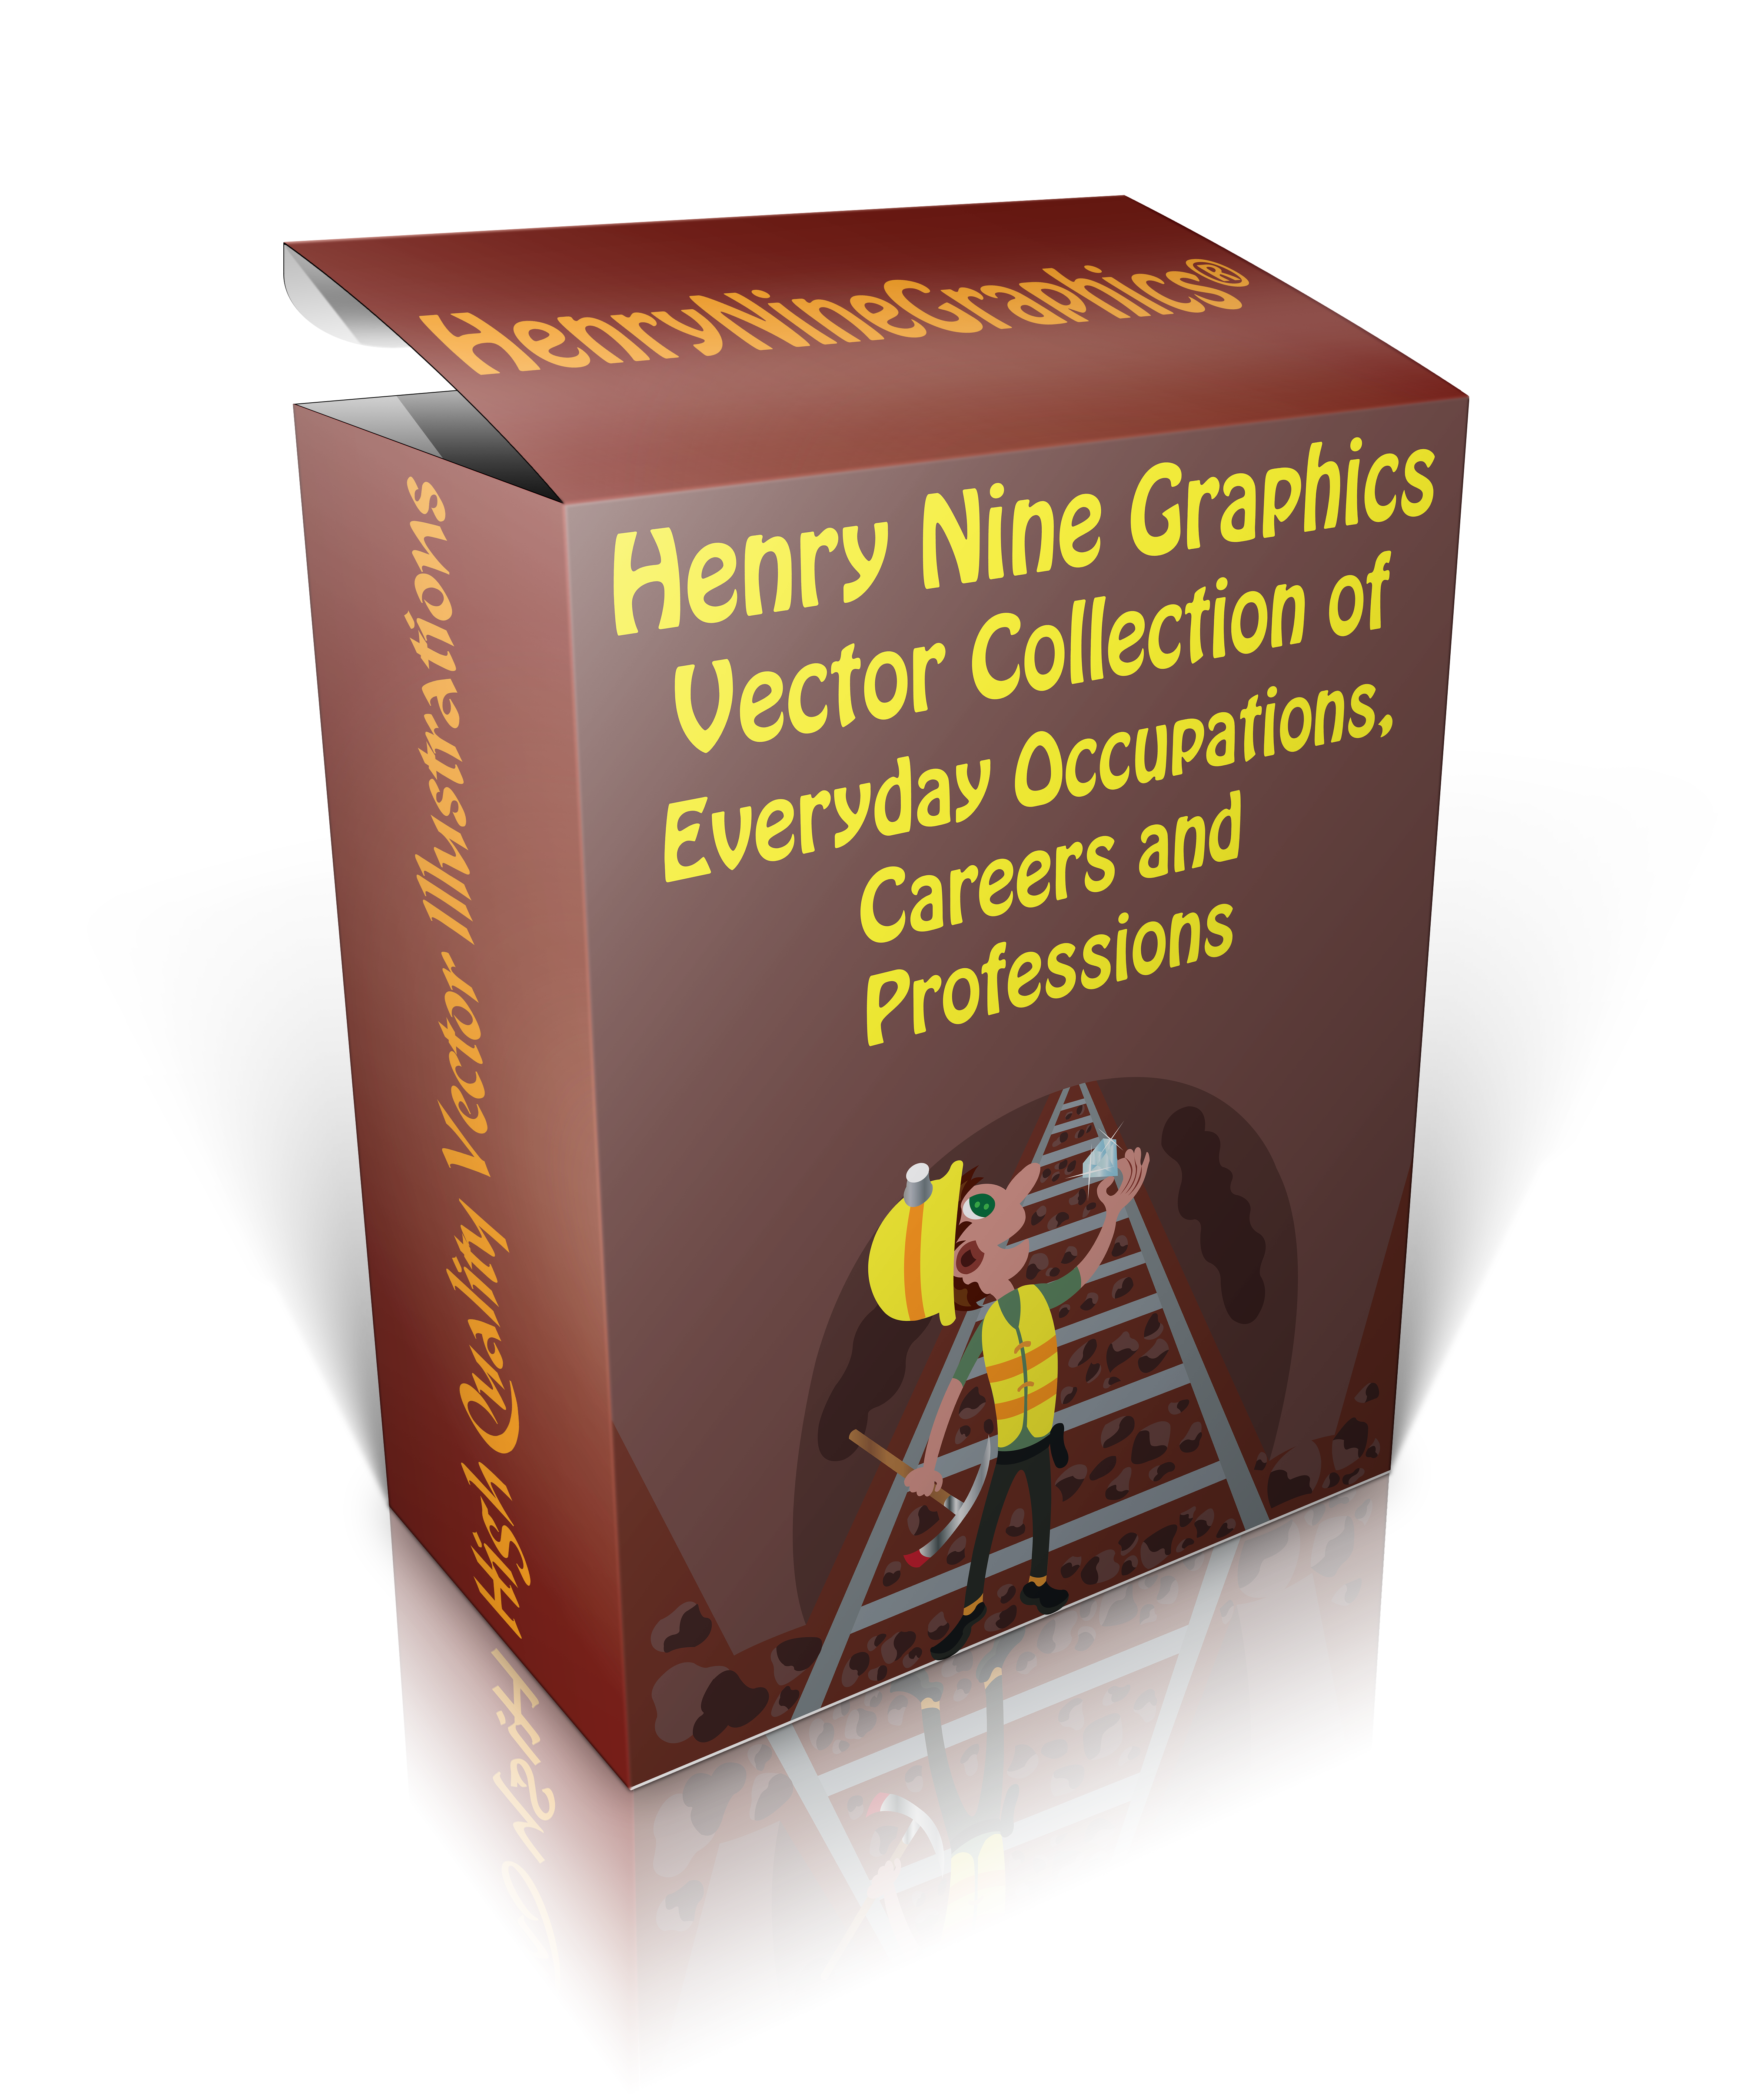 png Vector careers professions. Landingpage box cover image